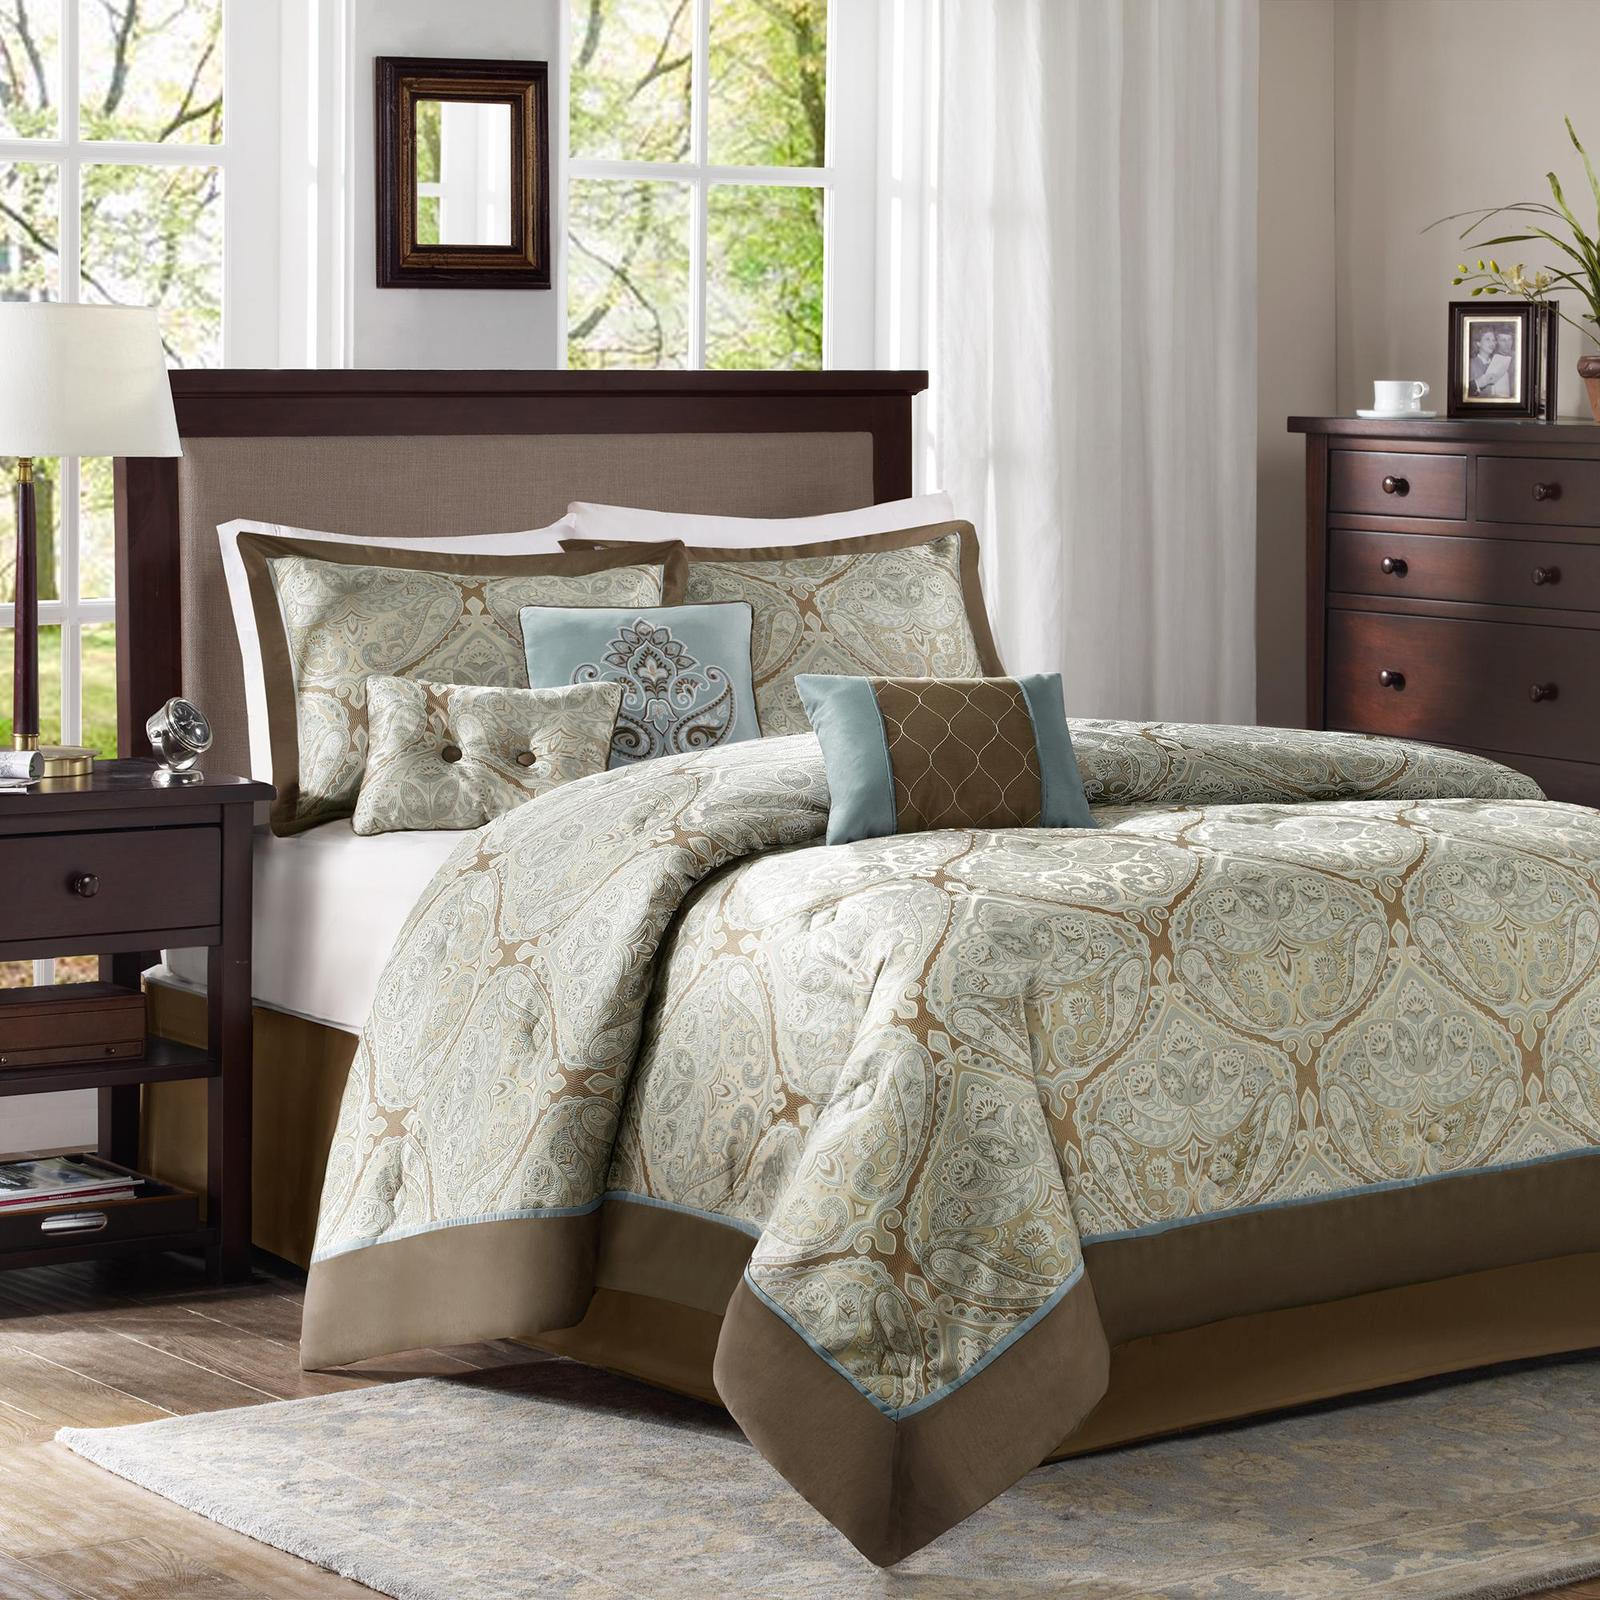 Colormate 6-piece Blue And Brown Filmore Jacquard Bedding